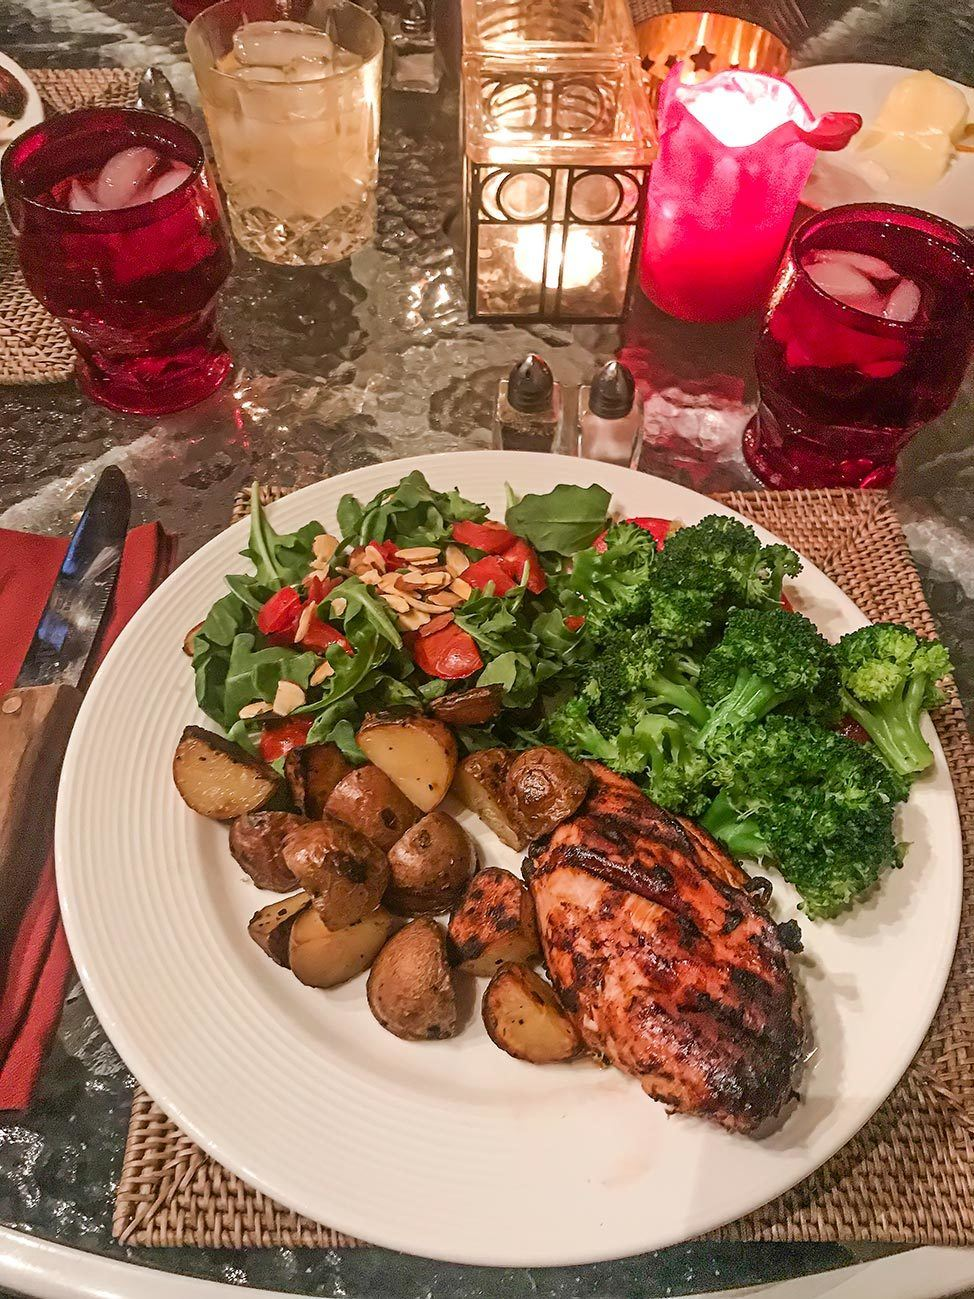 Home cooked meals in Los Angeles